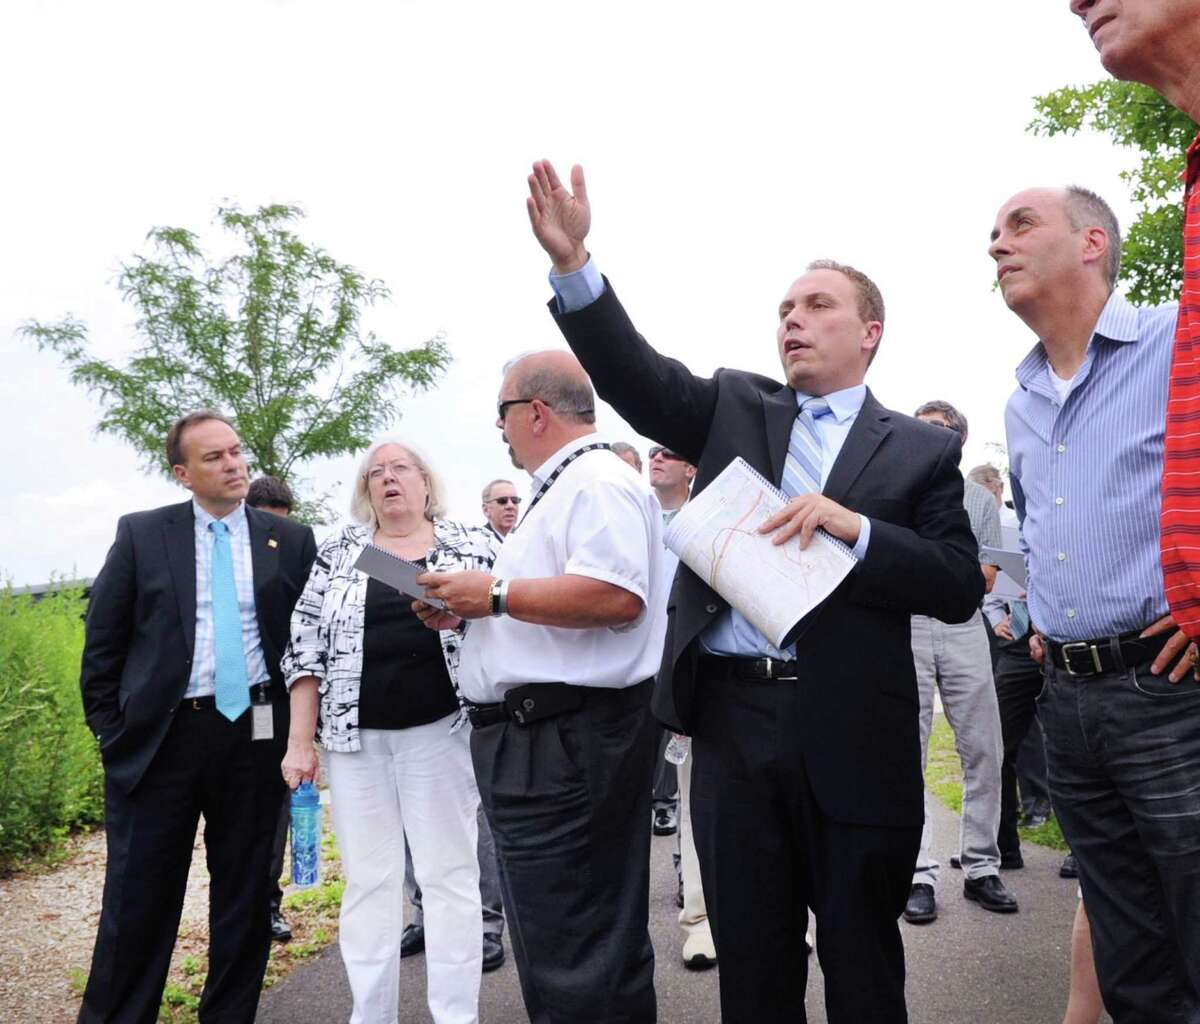 Second from right, Jason Cabral of the firm Burns & McDonnell, an engineering, architecture, and construction firm, leads the Connecticut Siting Council tour of Cos Cob Park in Greenwich July 13, 2017. At left is Greenwich First Selectman Peter Tesei.